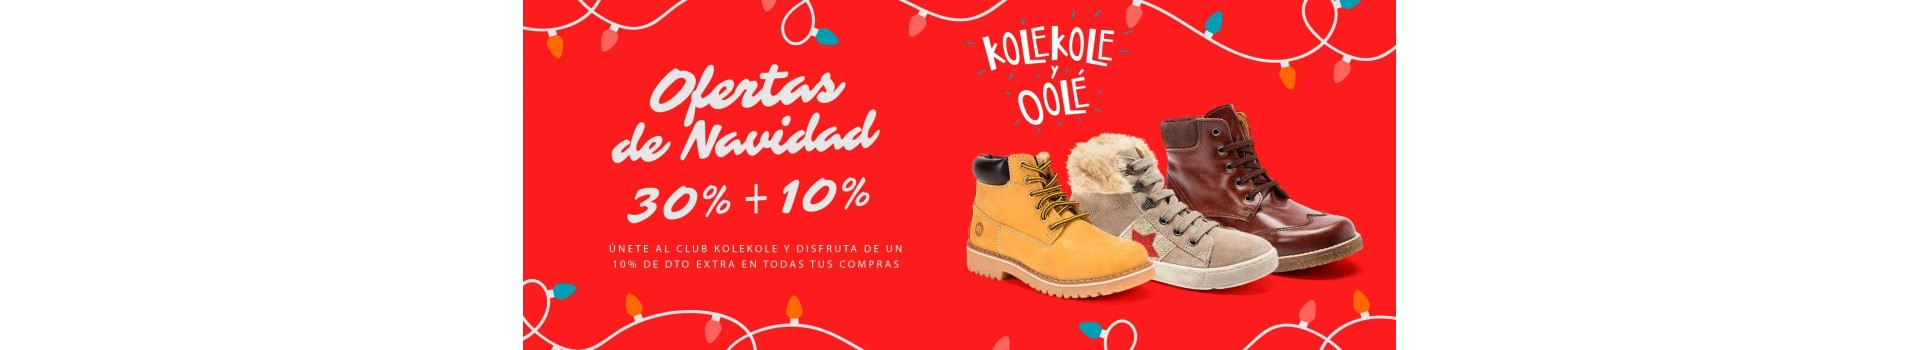 Black Friday | Kolekole